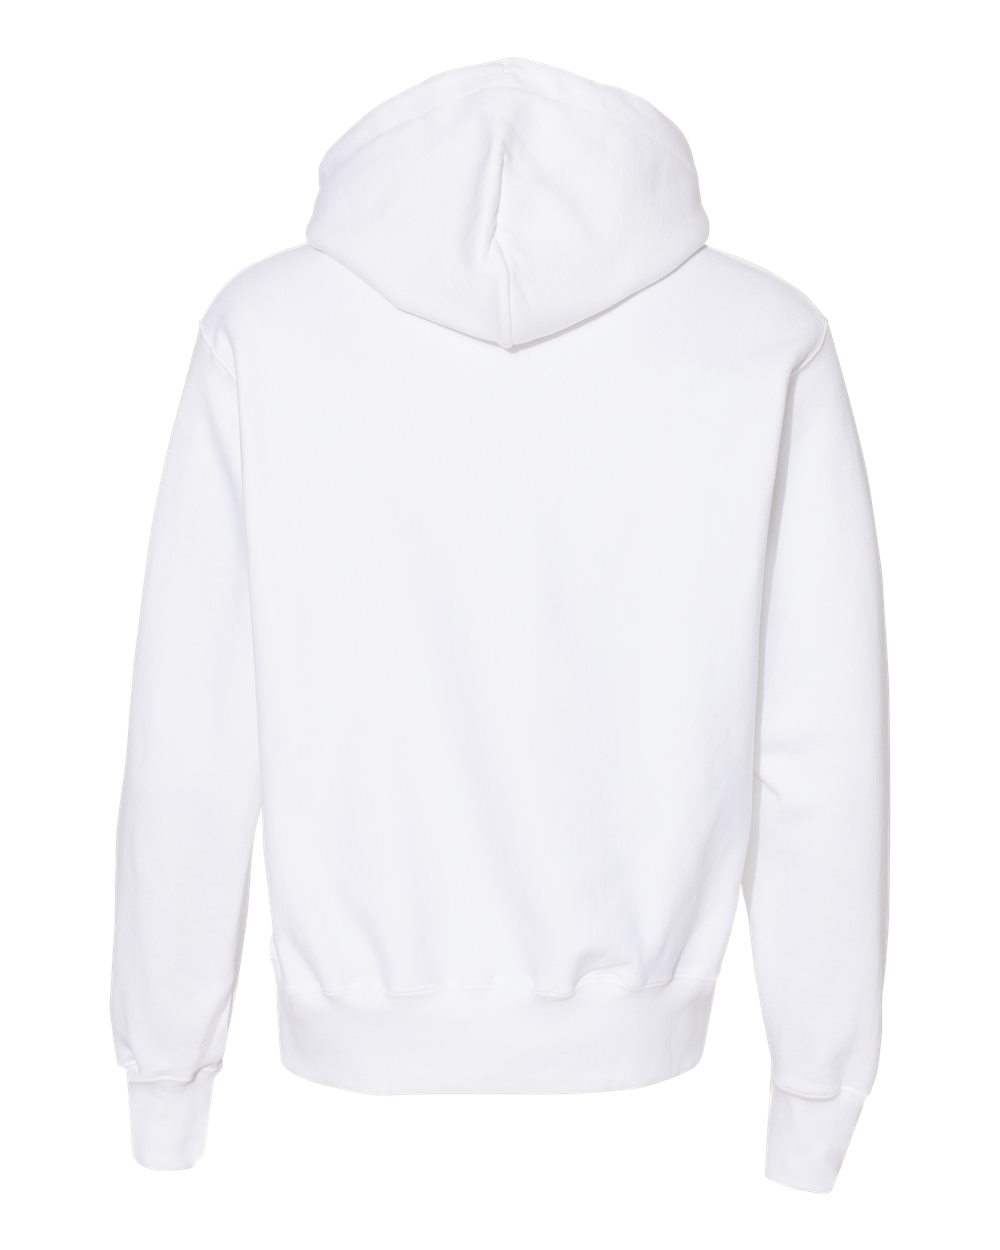 Champion-Mens-Reverse-Weave-Hooded-Pullover-Sweatshirt-S101-up-to-3XL thumbnail 49